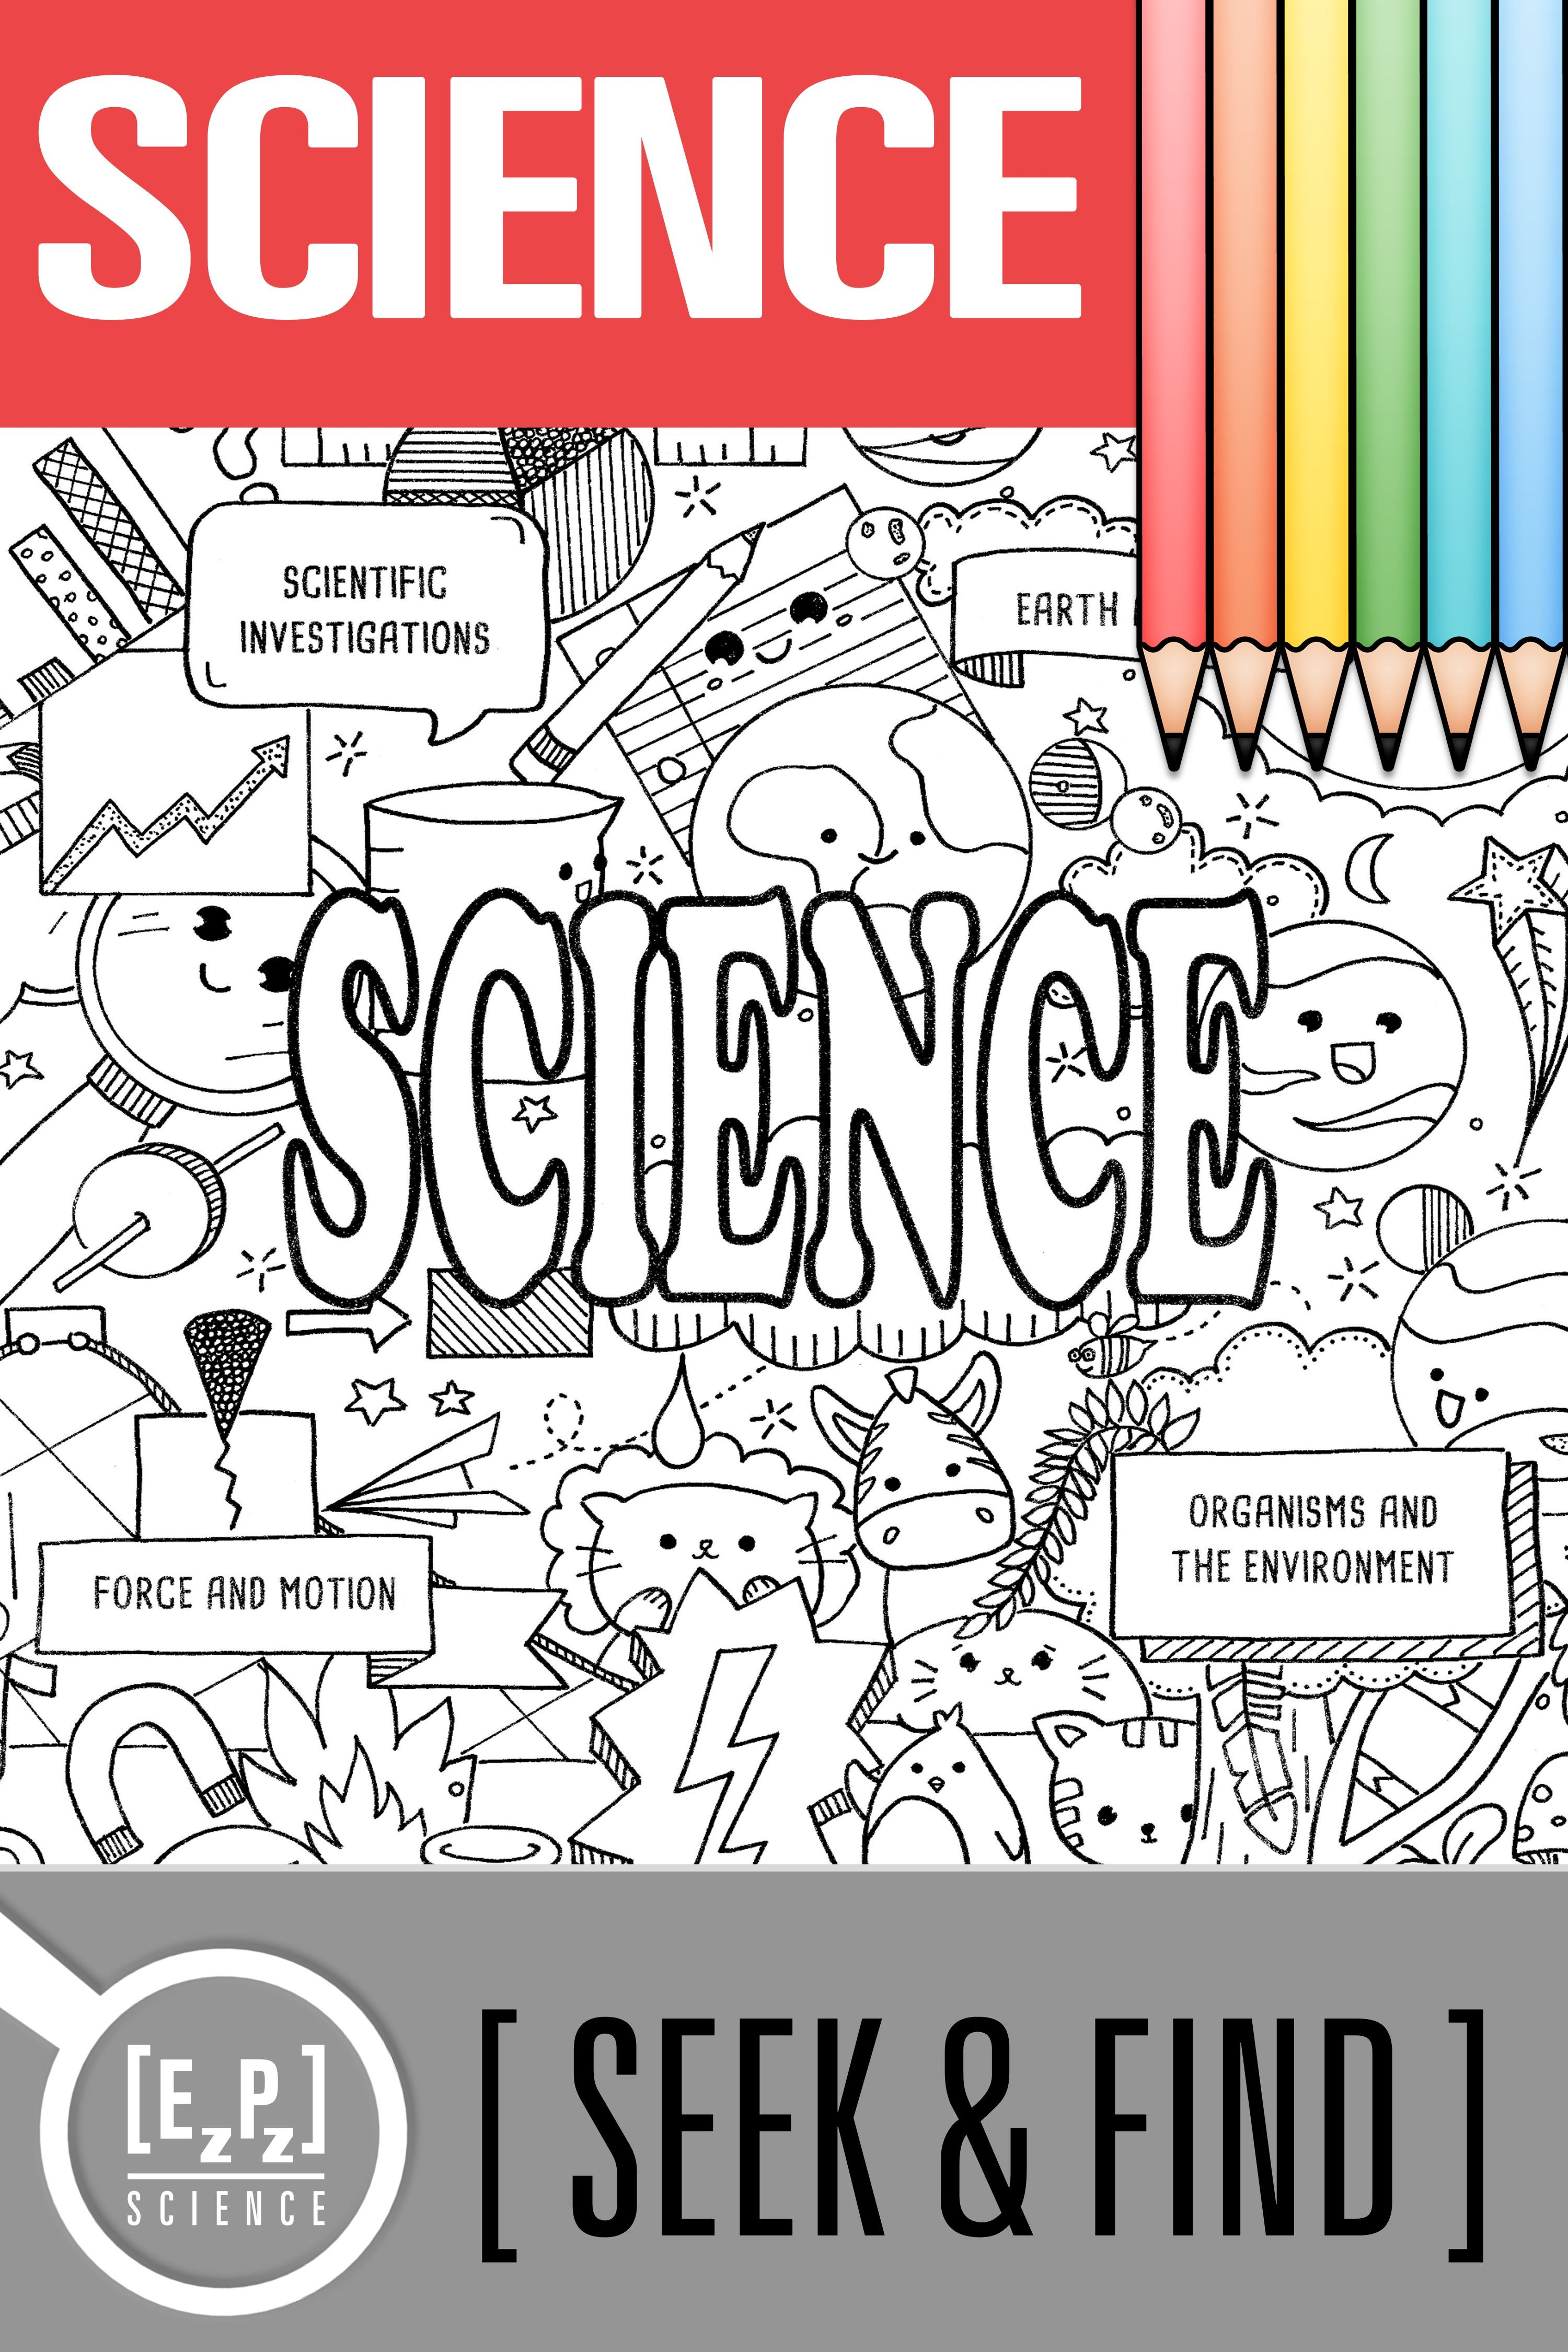 Science Seek And Find Science Doodle Activity No Prep Printable And Digital Science Doodles Science Doodle Pages